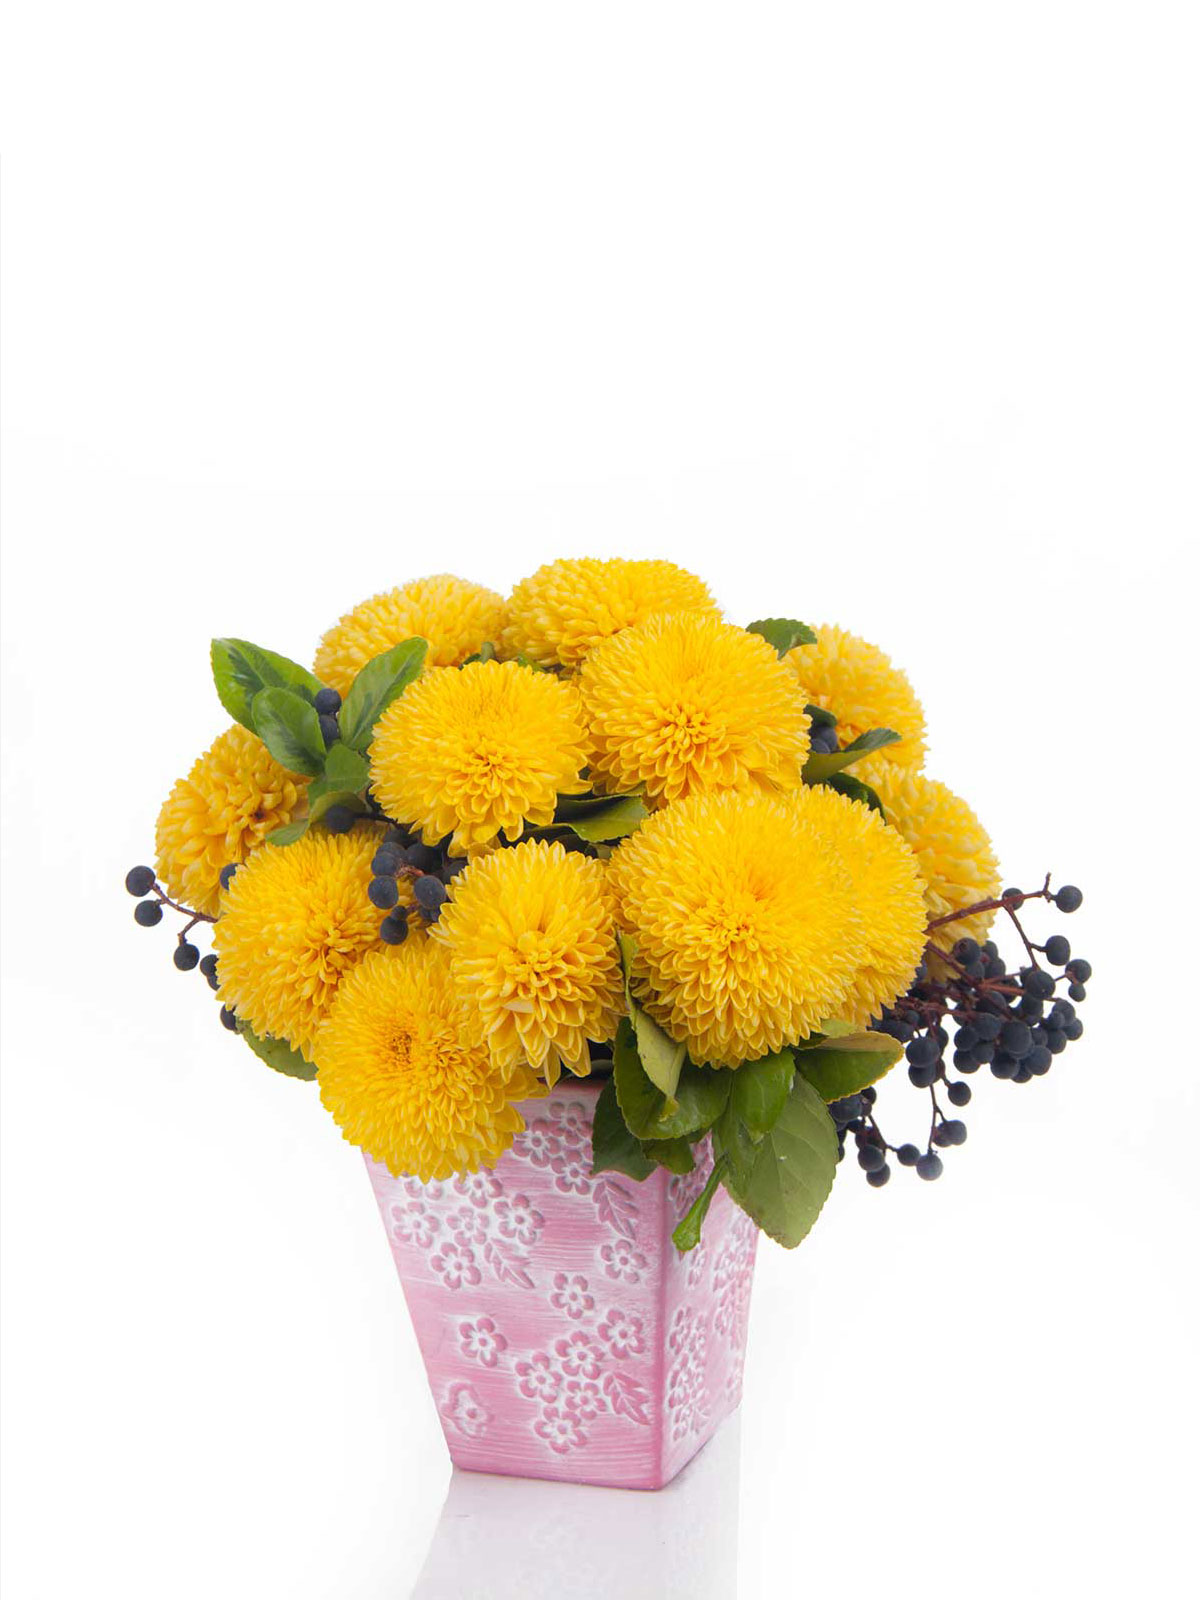 How to make pompomsunflower bouquet flower boutiques in toronto wild chrysanthemum taxa are floral seasonal plants or subshrubs they have alternately arranged leaves divided into leaflets with toothed or occasionally izmirmasajfo